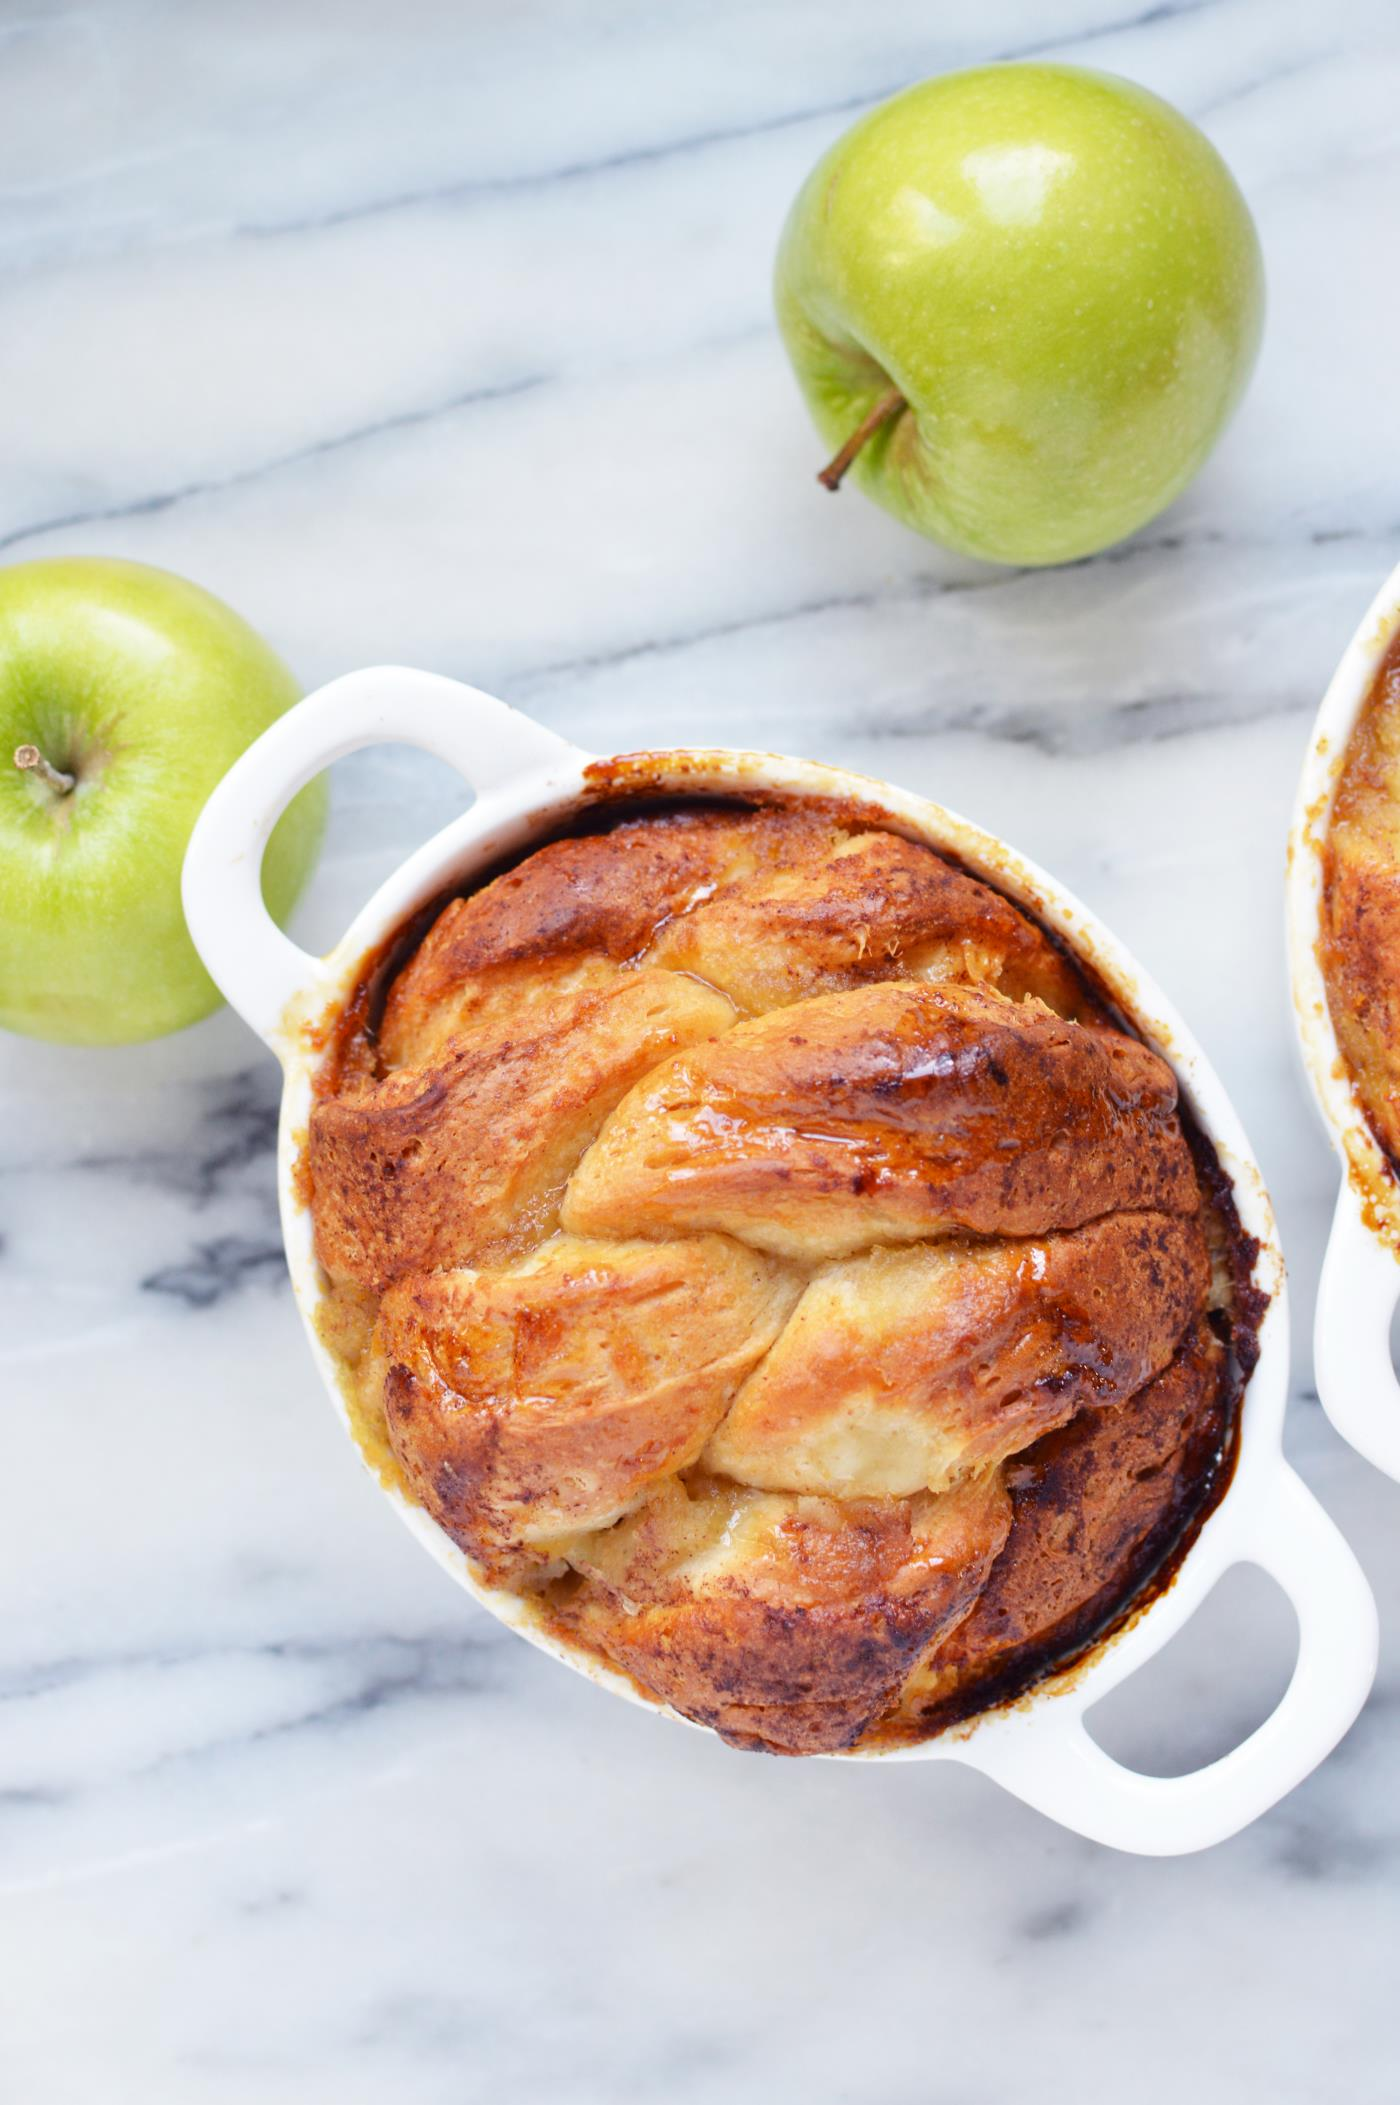 Apple pull apart bread in bakeware.